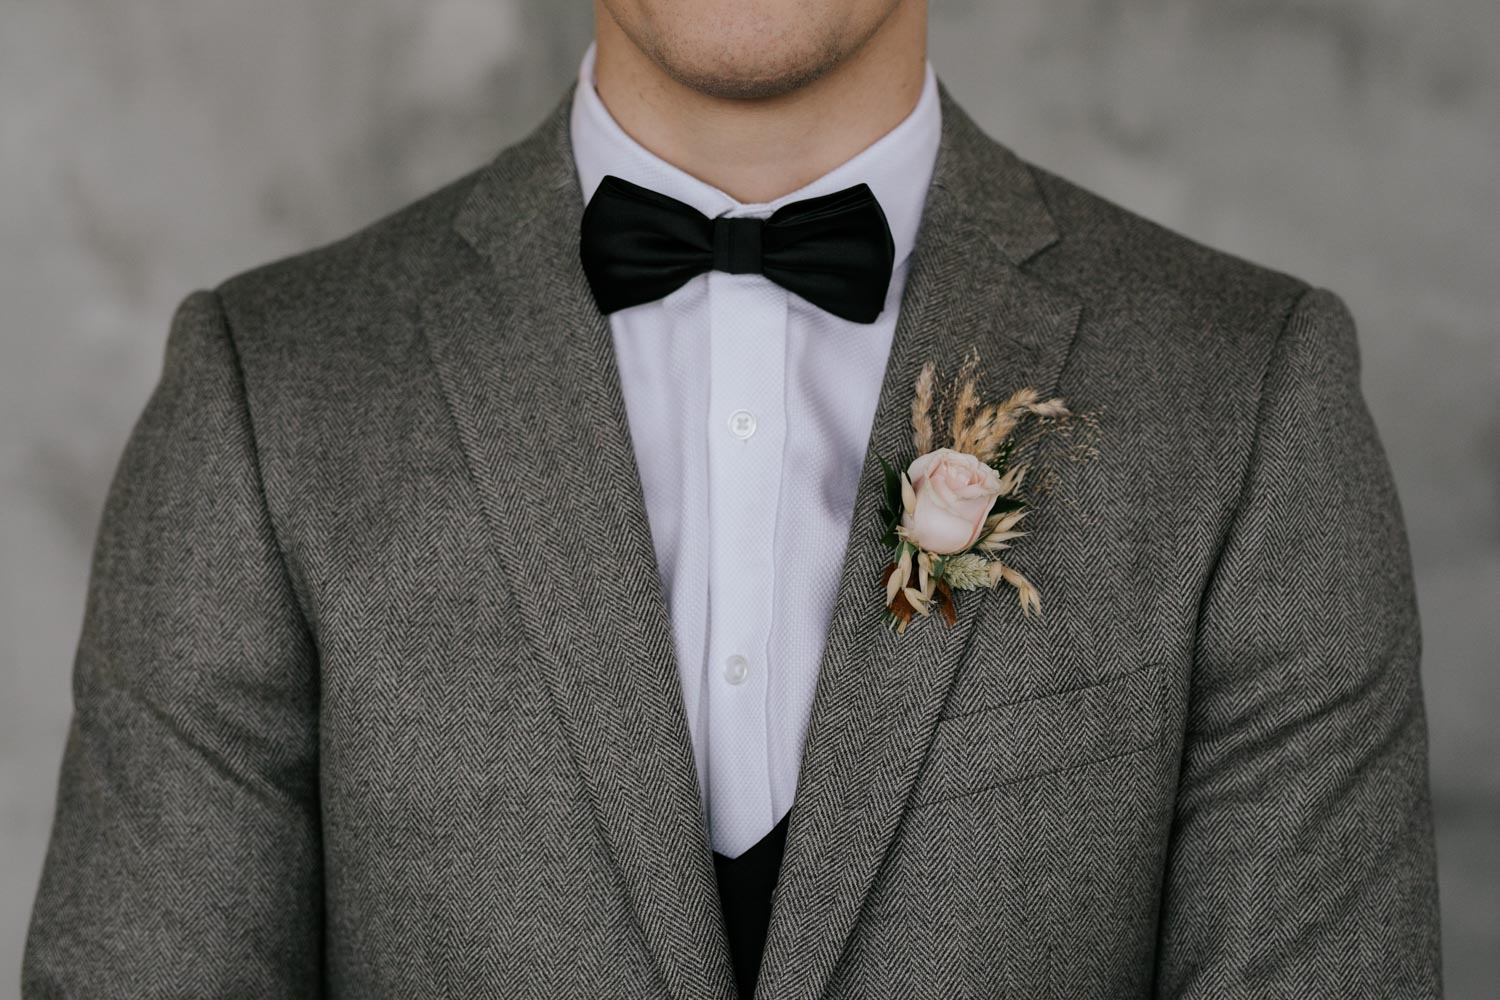 Groom with long hair in grey jacket, black bowtie and black pants